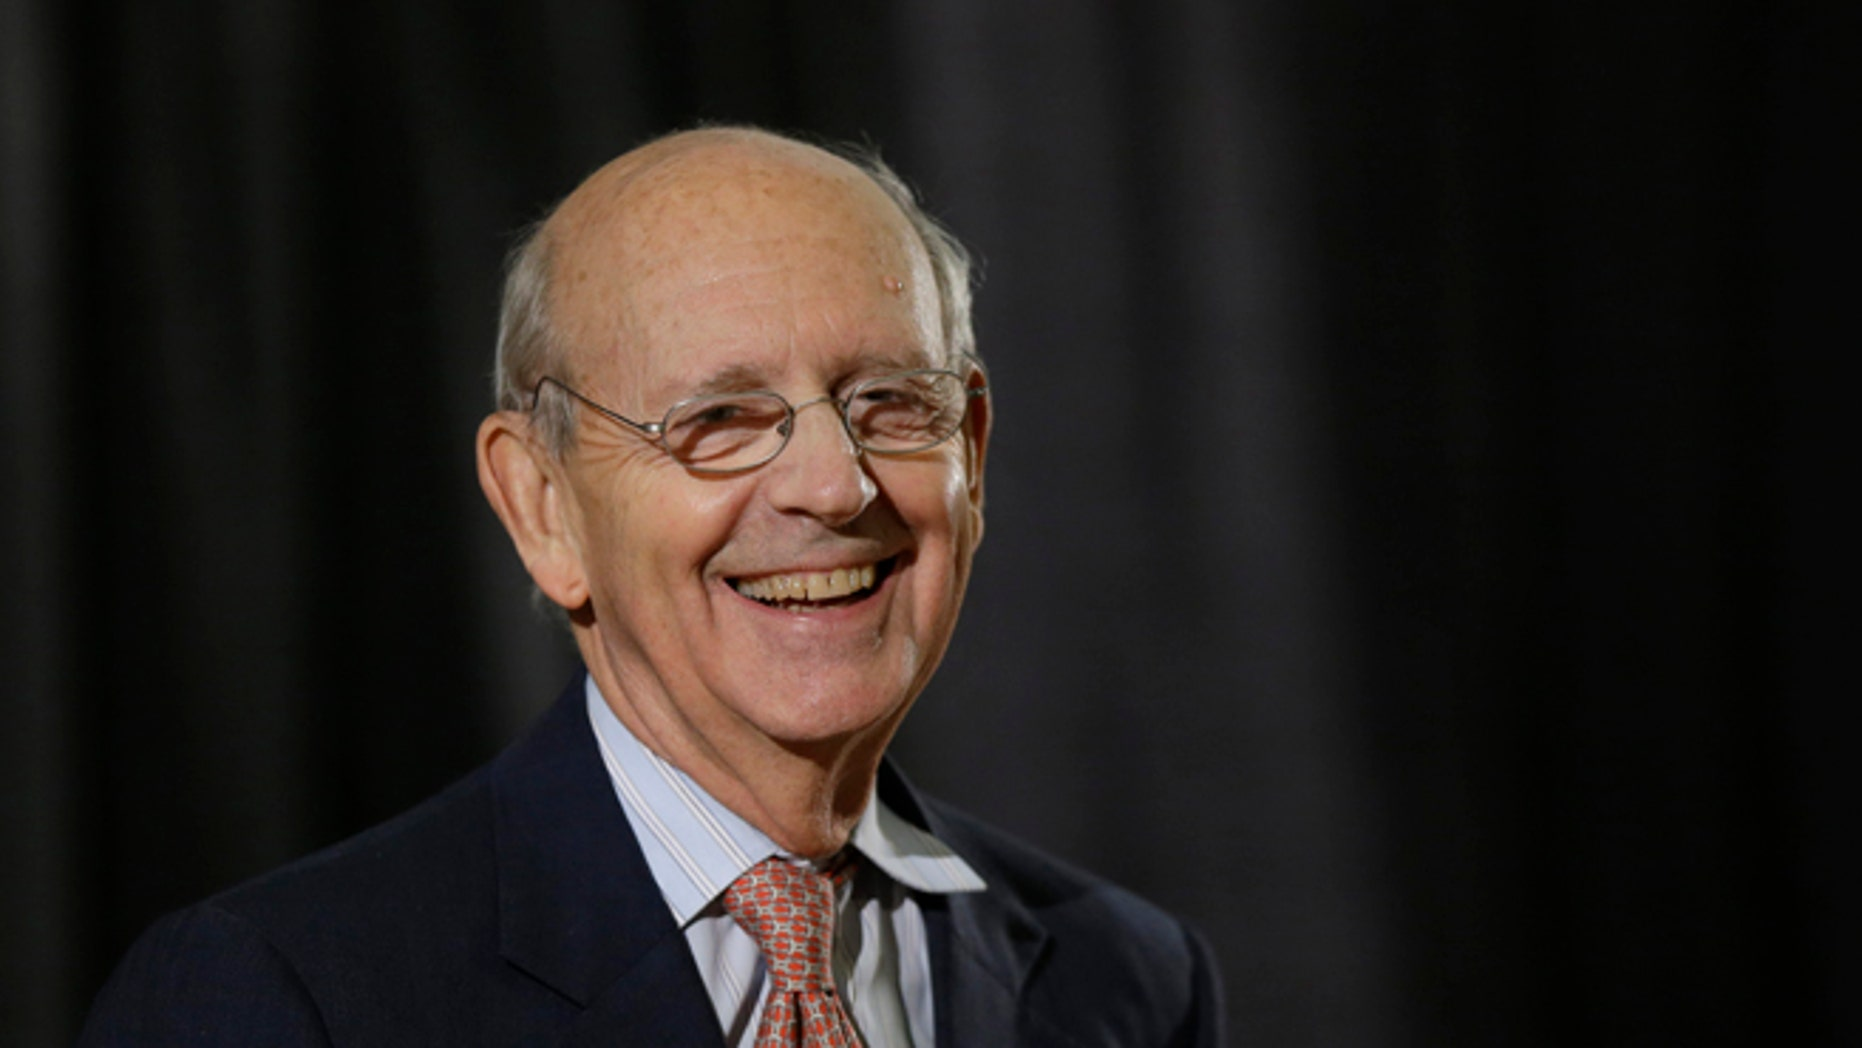 FILE: Jan. 24, 2013: Supreme Court Justice Stephen Breyer at a lecture at Boston University School of Law in Boston. Mass.